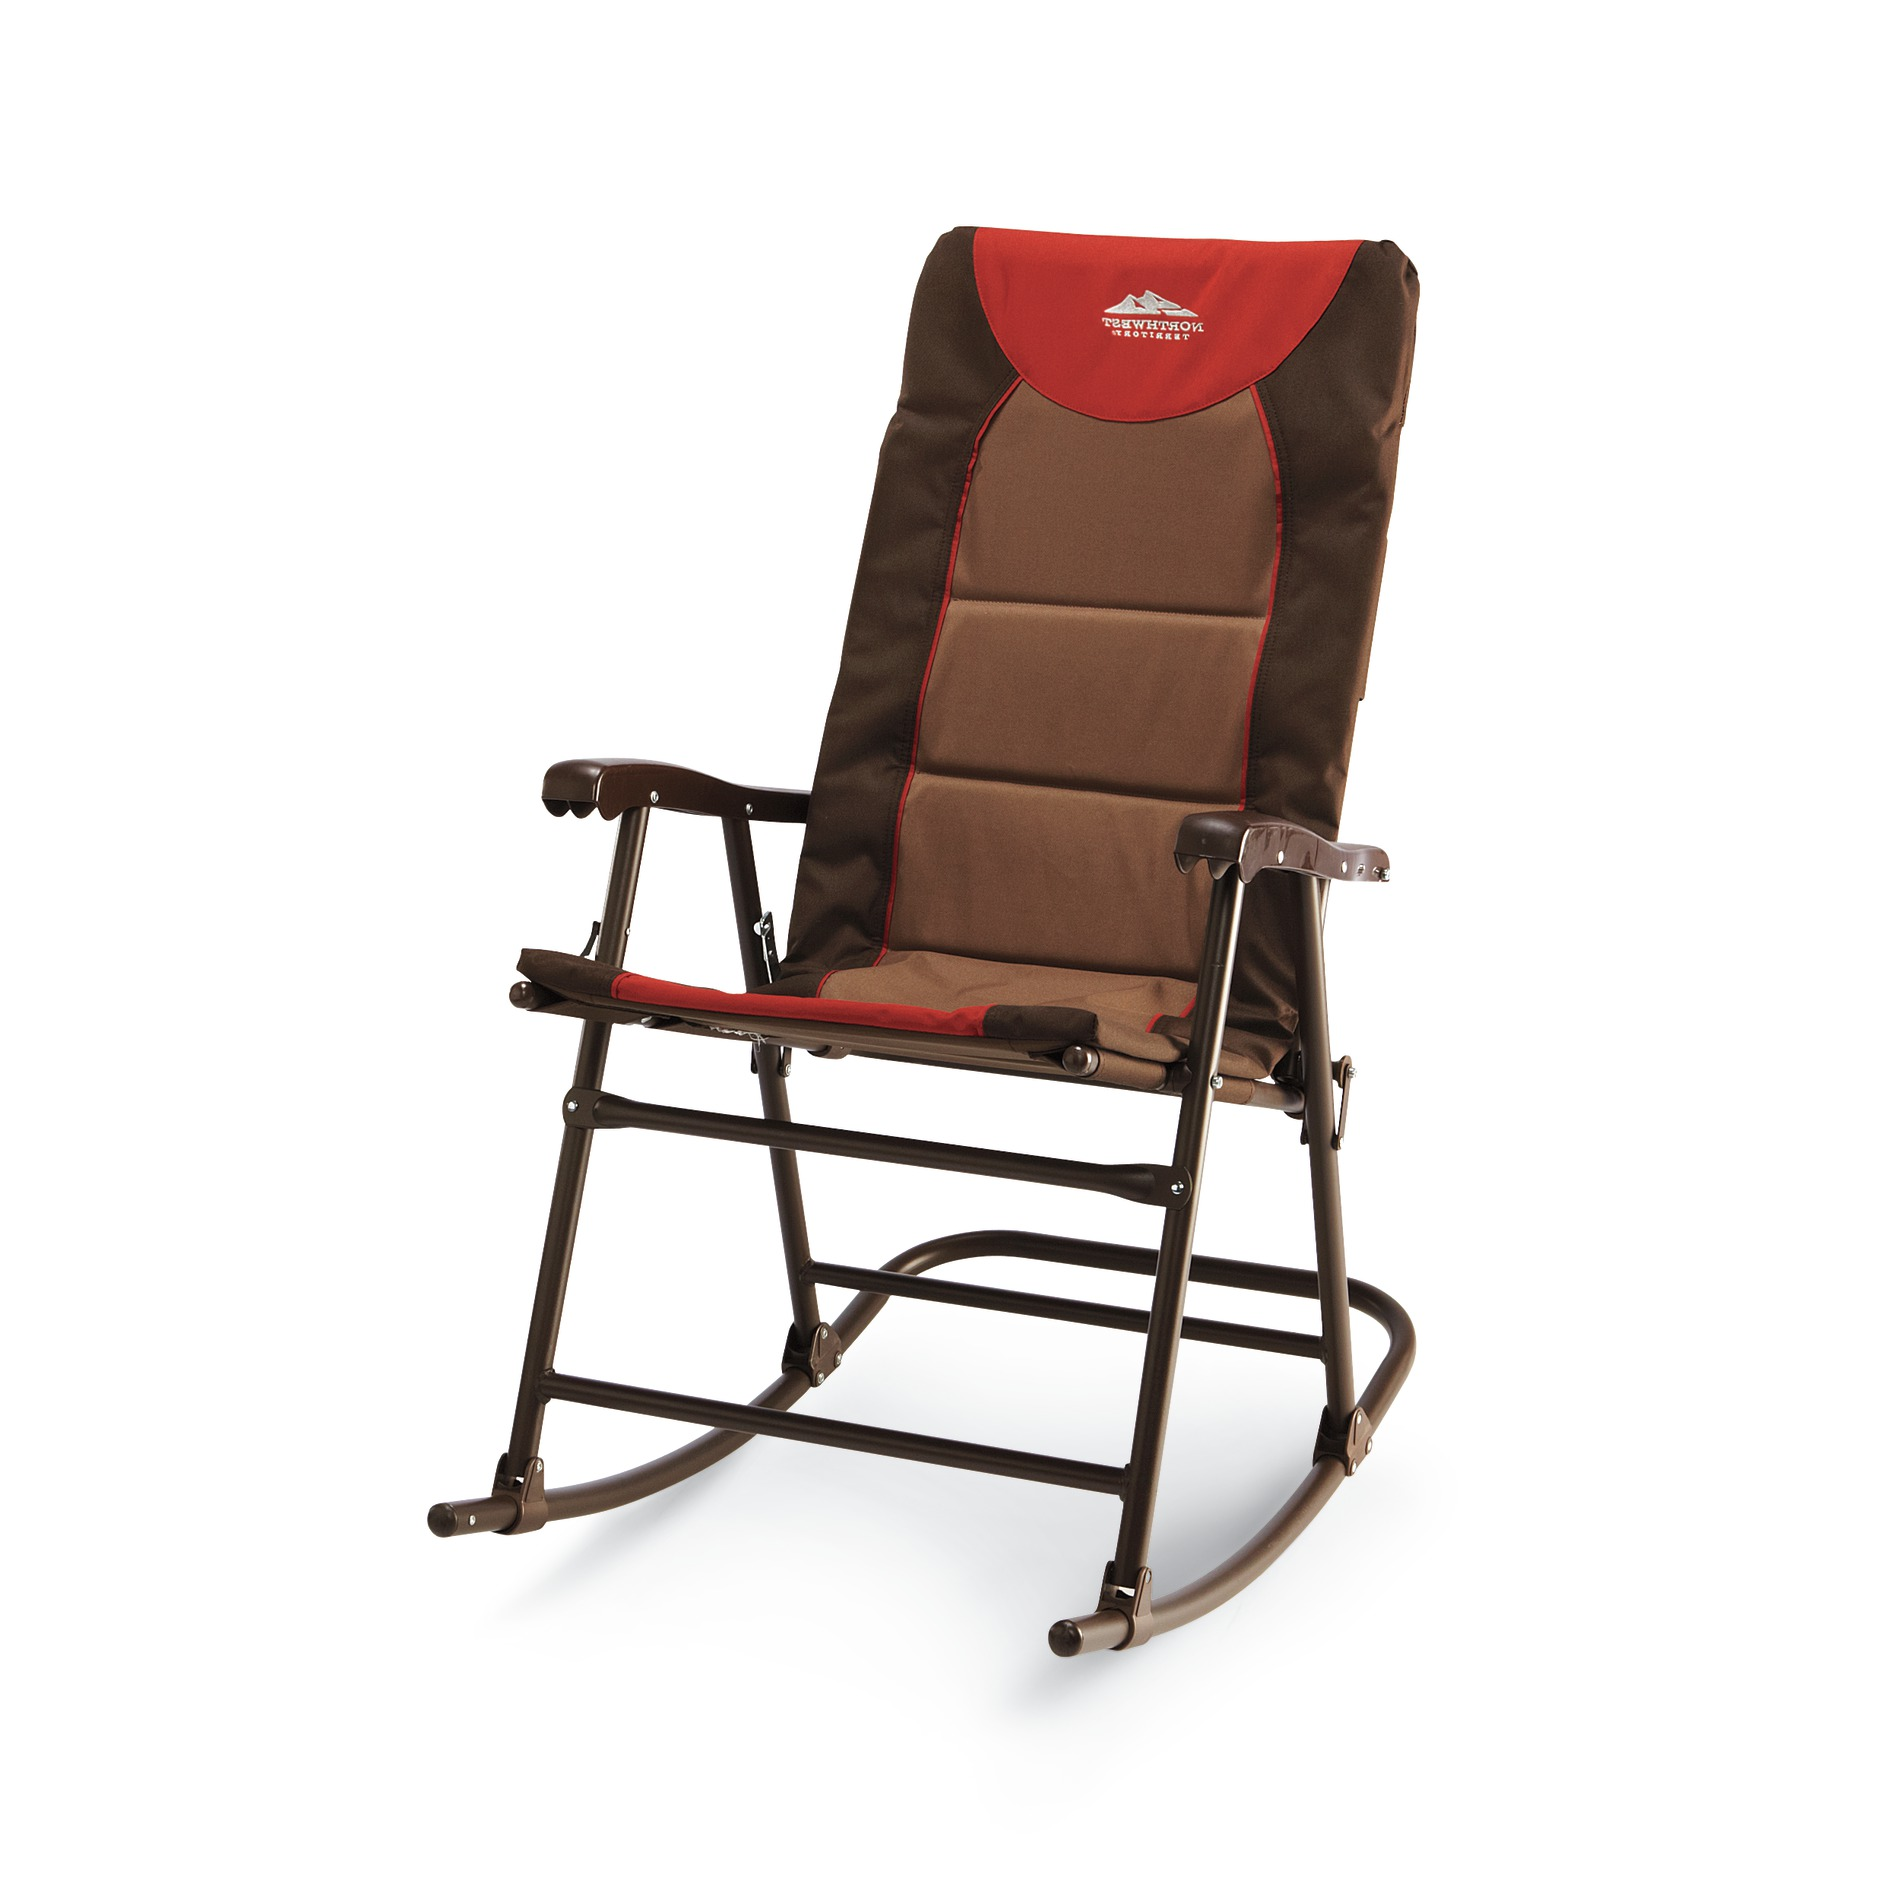 Rocking Chair Folding Outdoor camping Patio Comfortable